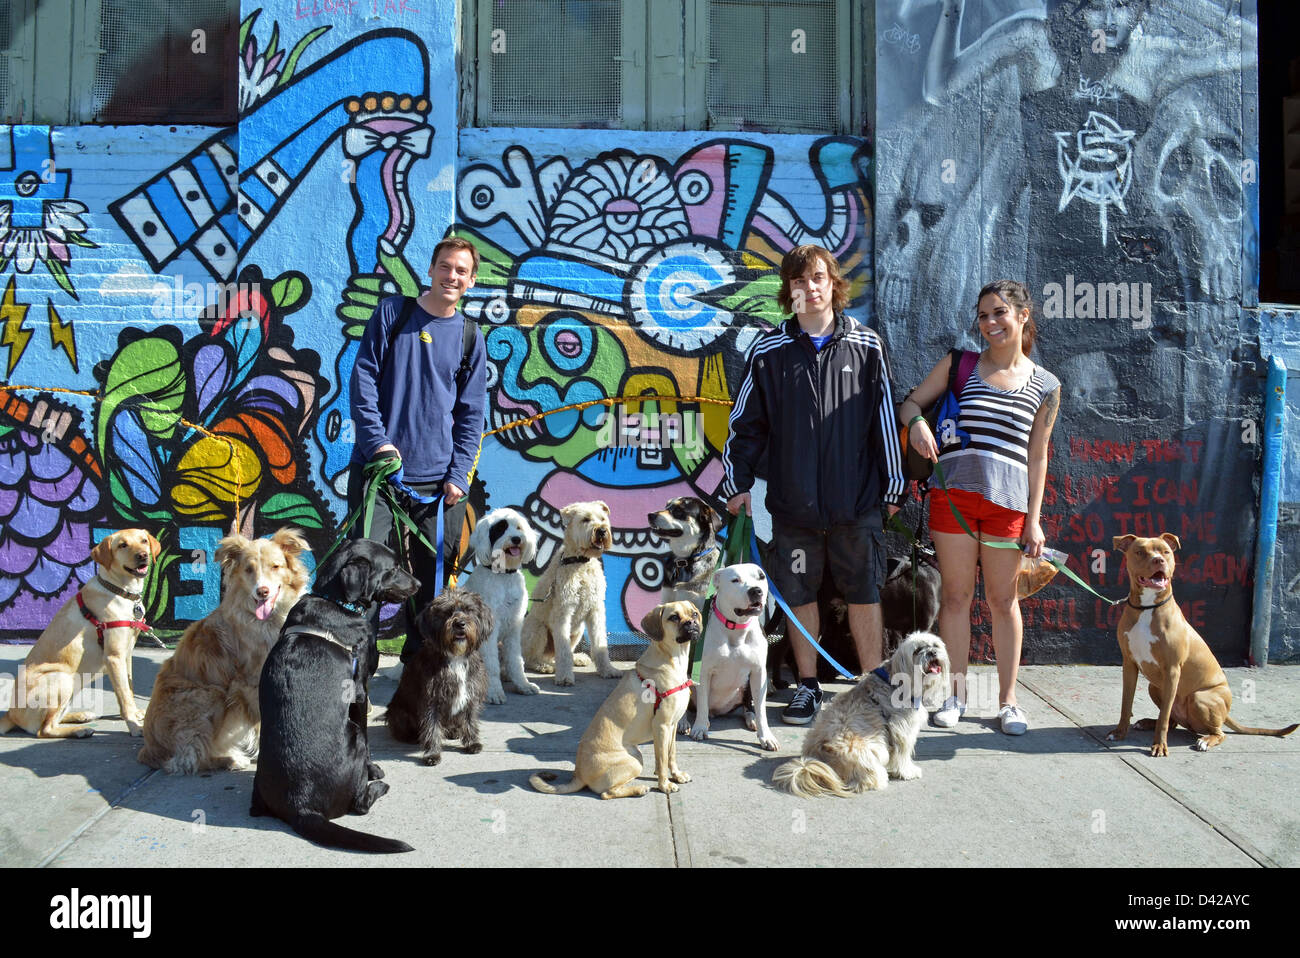 Graffiti wall in queens ny - Dog Walkers In Long Island City Queens New York In Front Of Graffiti Wall At 5 Pointz